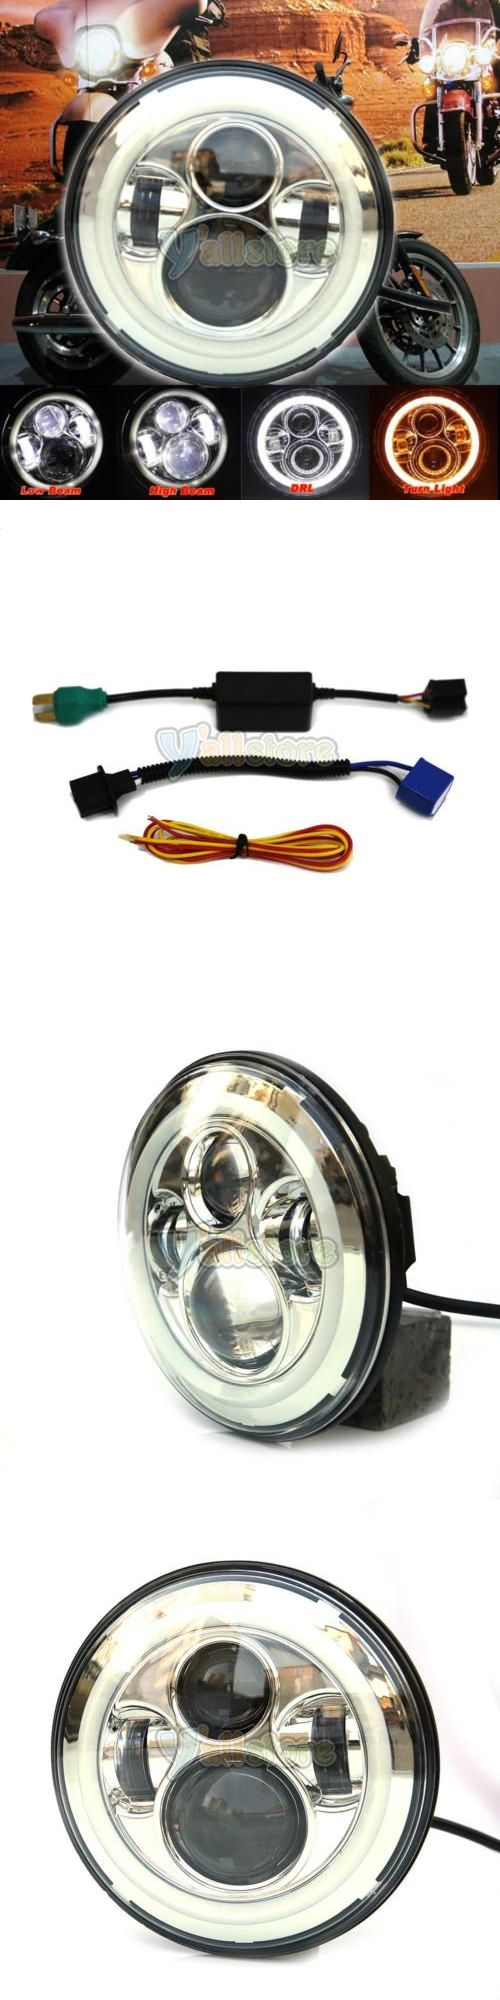 motorcycle parts: 7Inch Led Projector Daymaker Headlight For Harley Street Glide Softail Flhx F -> BUY IT NOW ONLY: $45.29 on eBay!